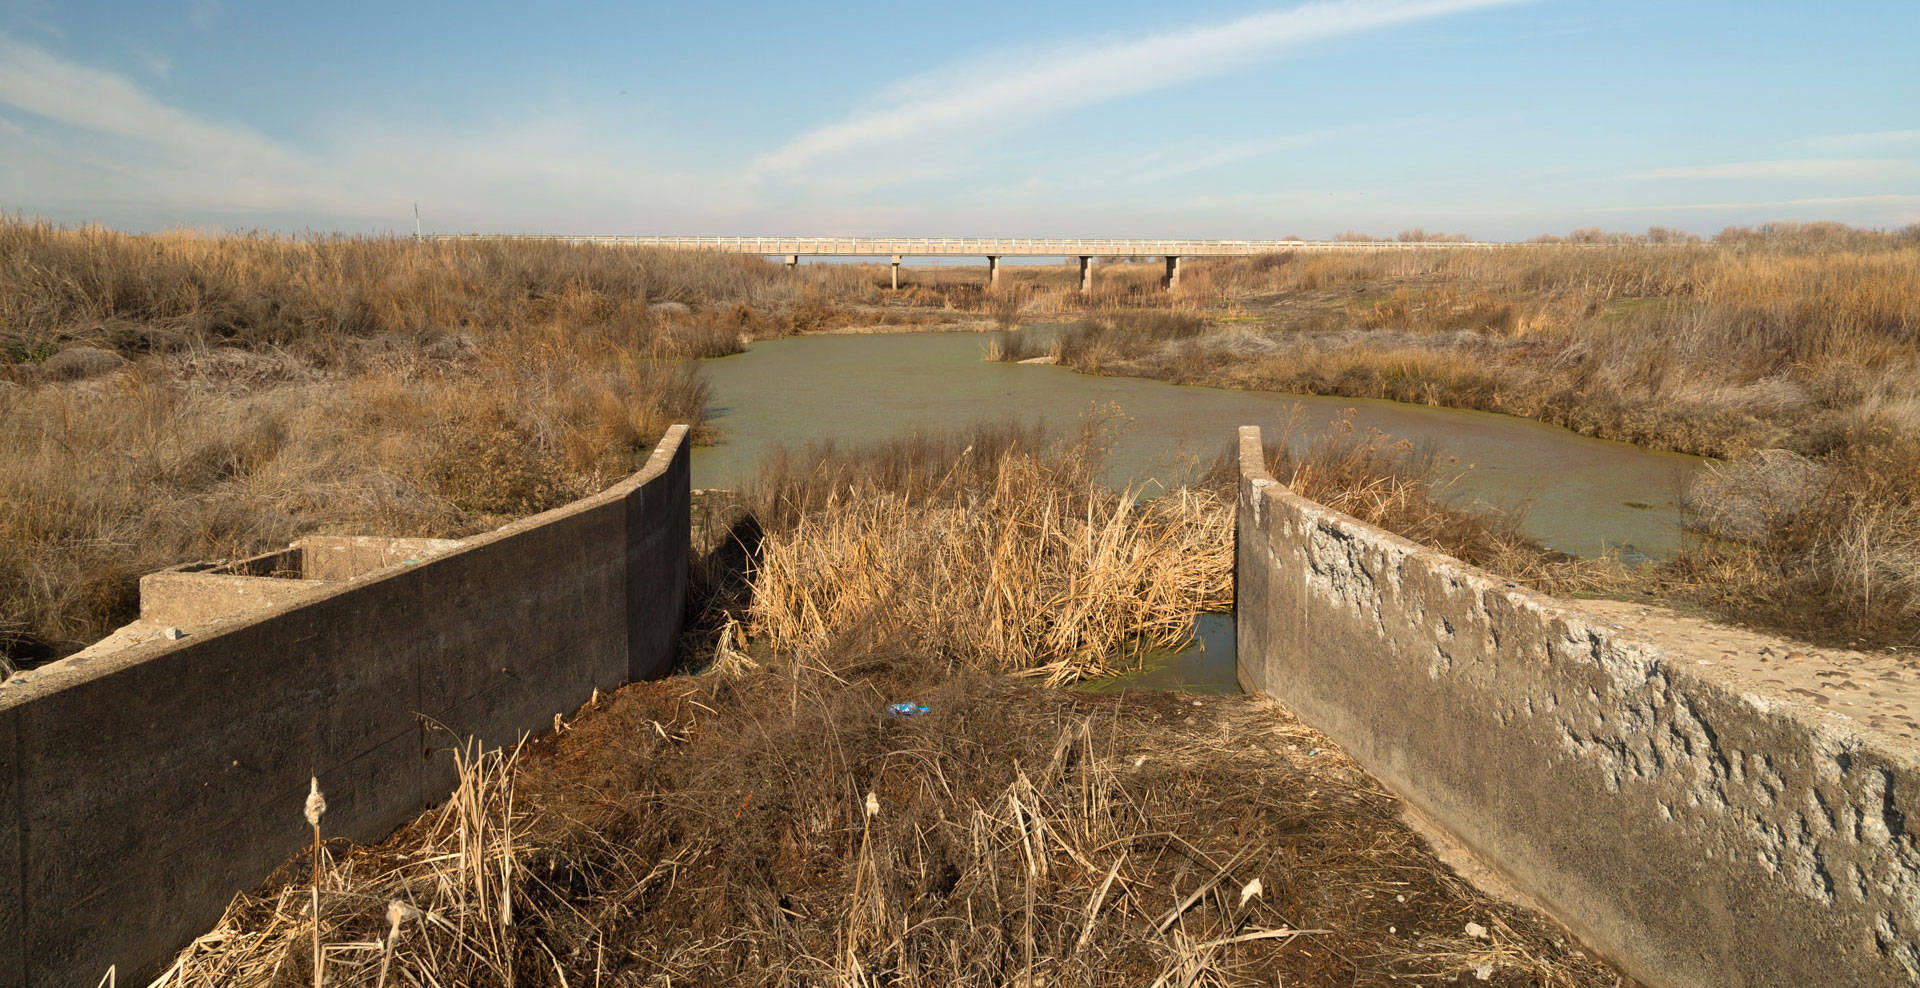 California's second largest river, the San Joaquin, goes completely dry in places.